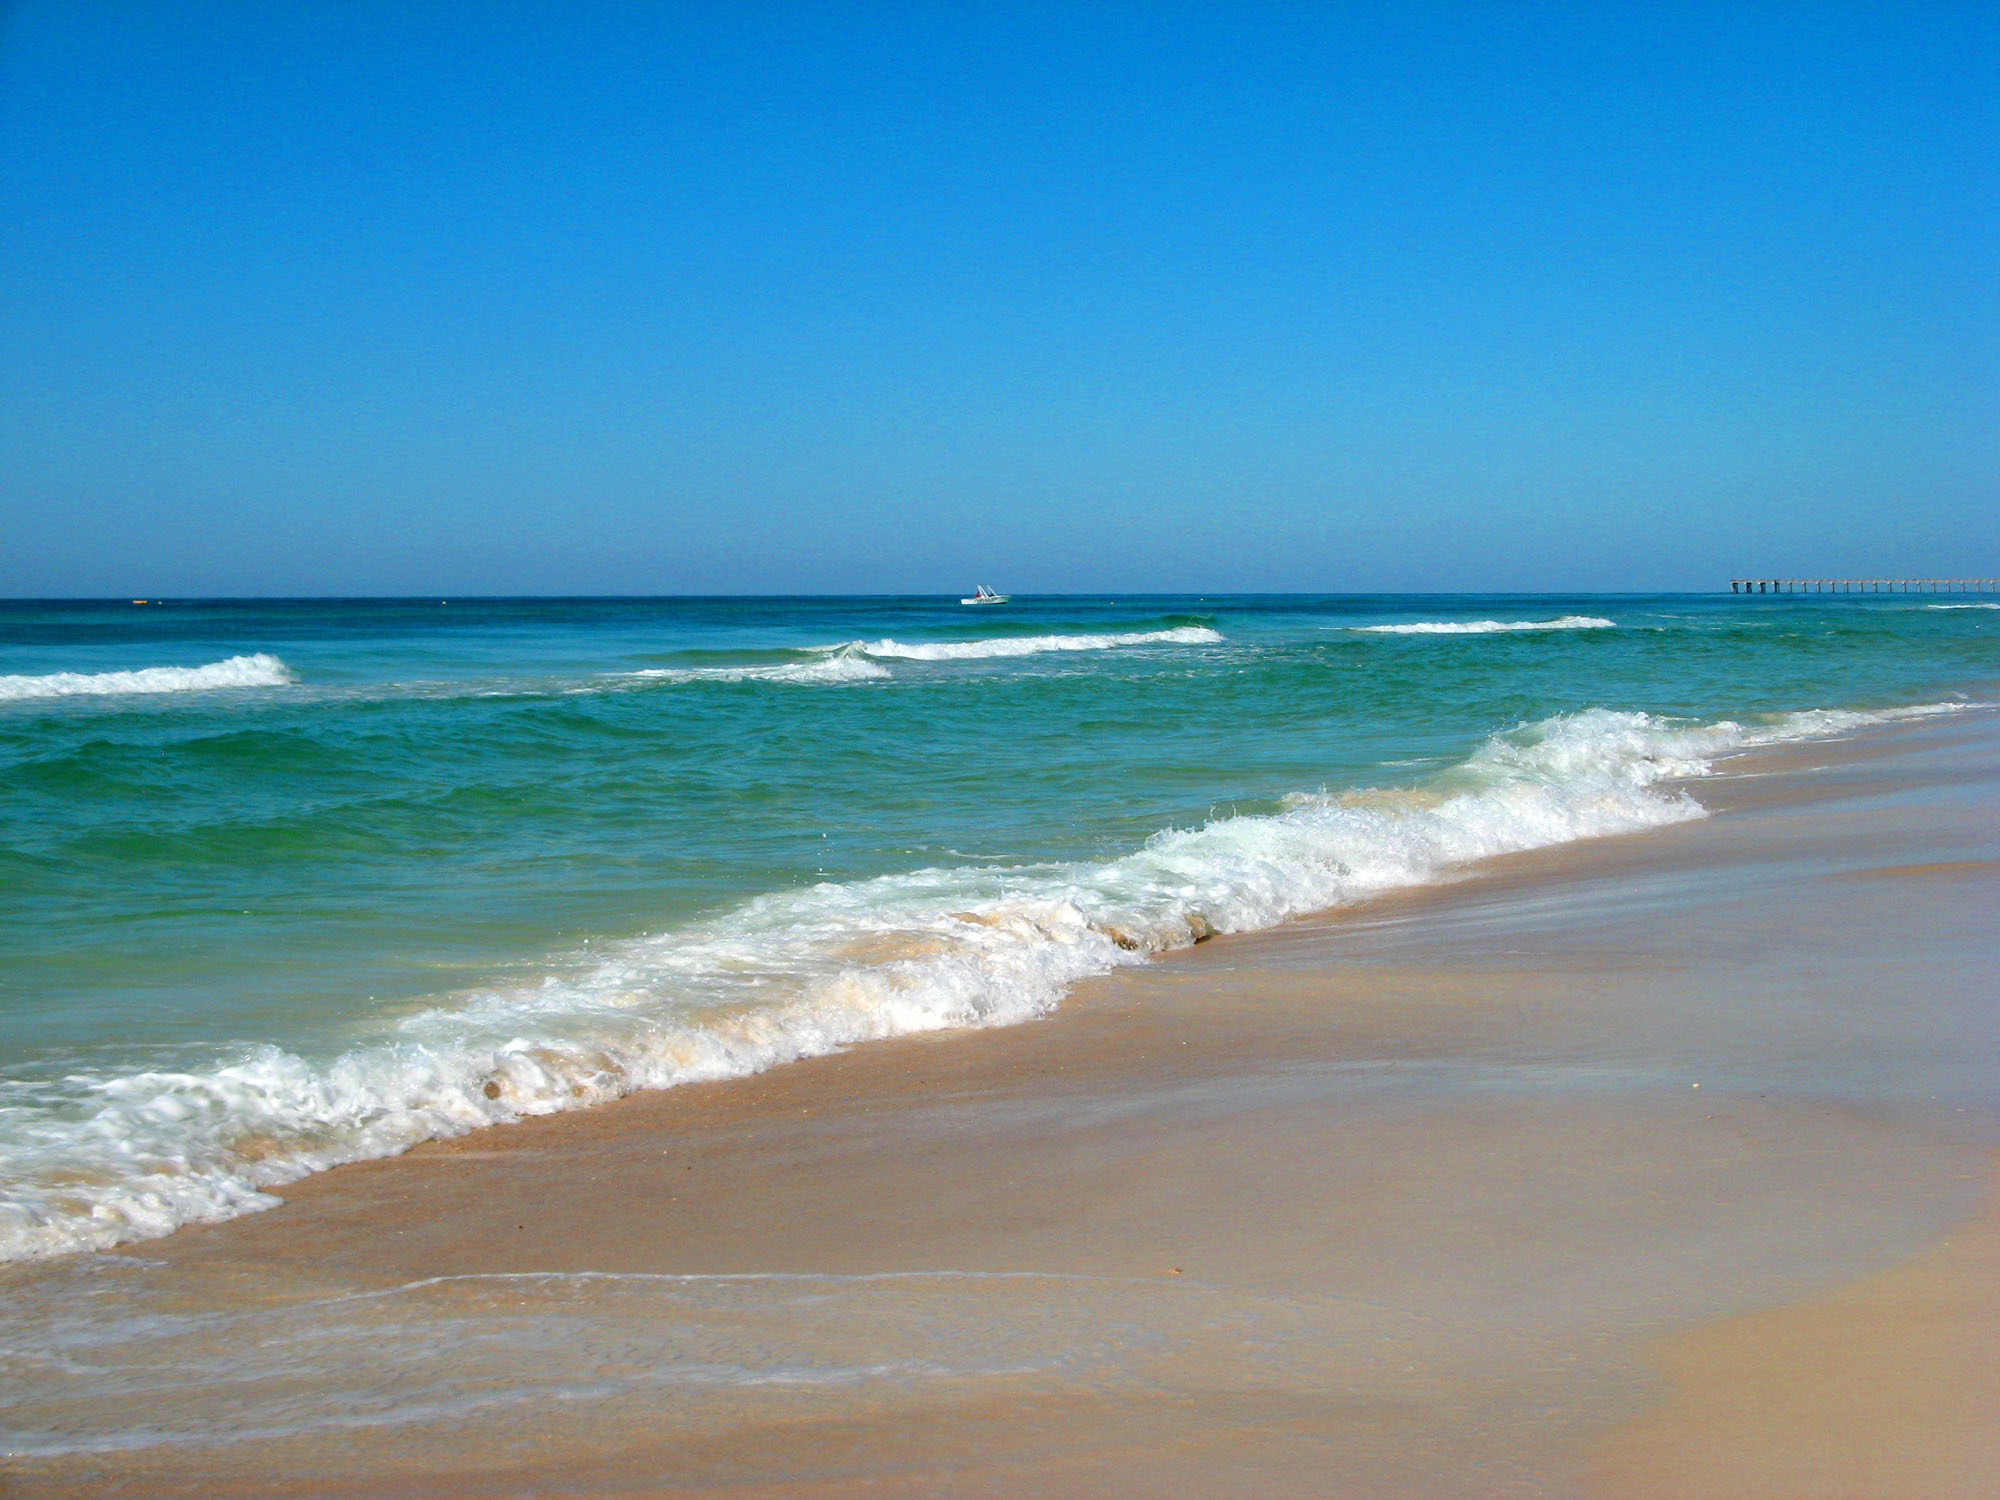 25 Best Florida Beaches - vacationidea.com